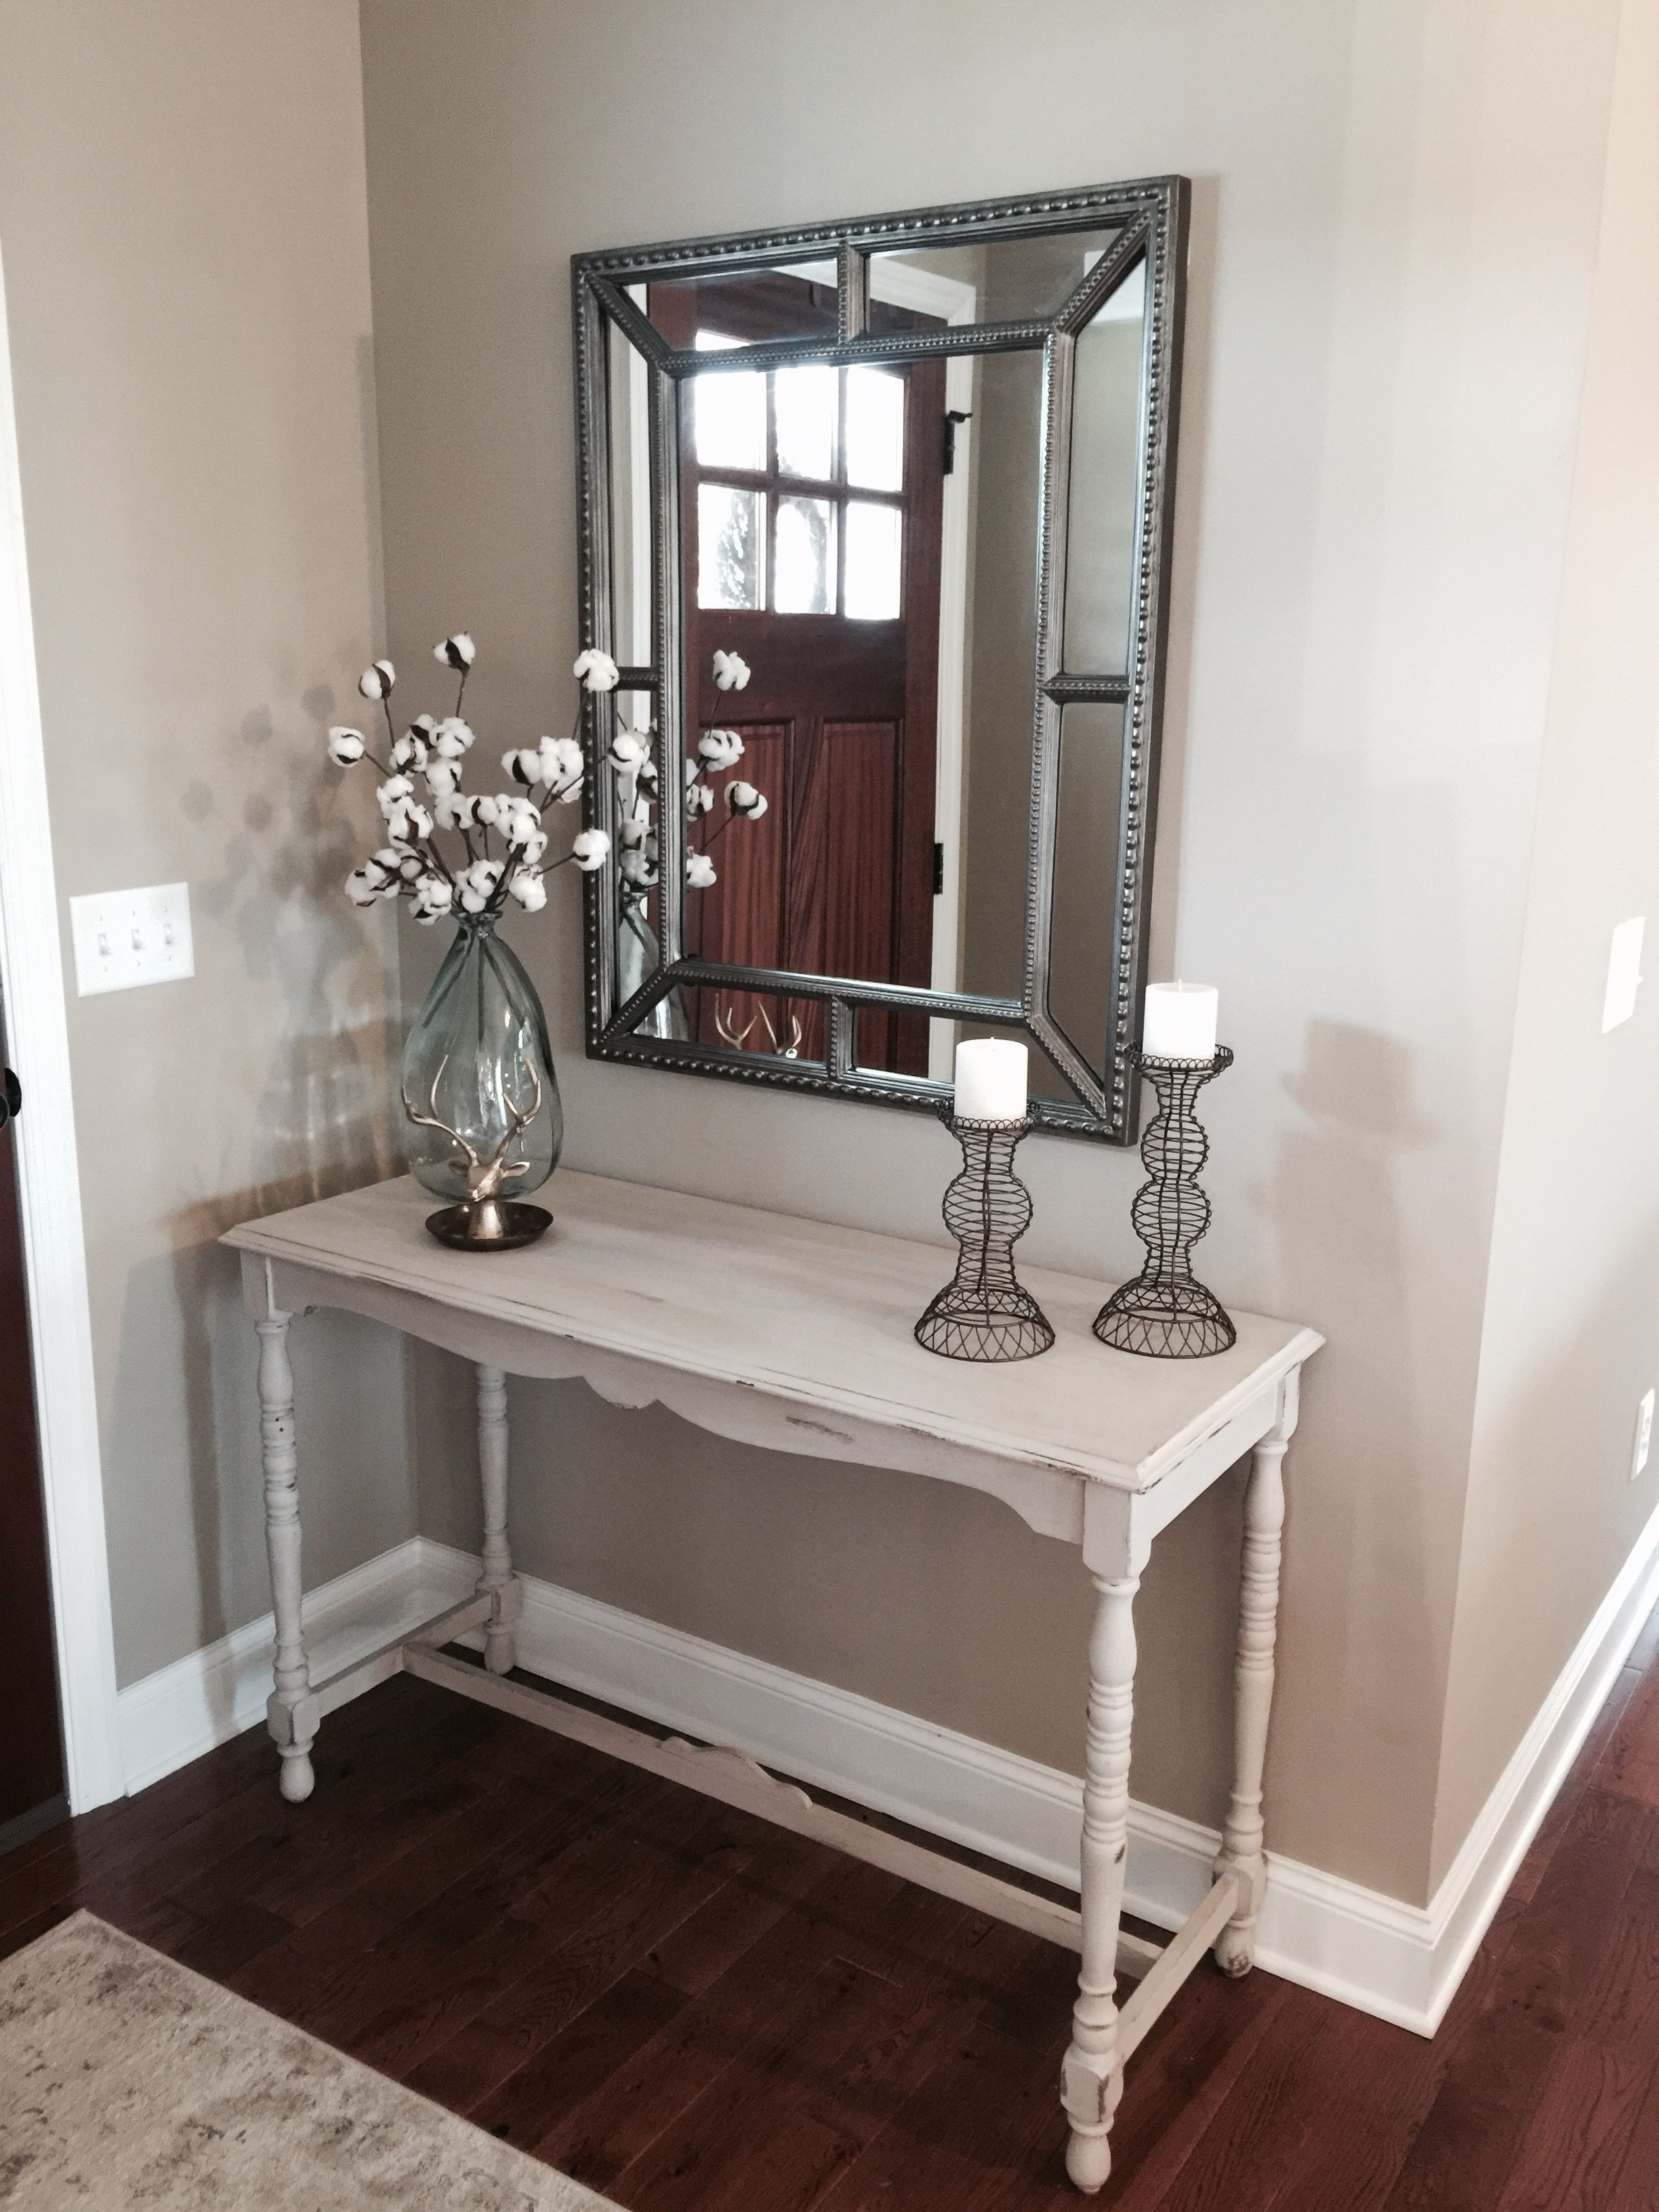 Small Foyer Table And Mirror : Small entry way restored console table decor from world